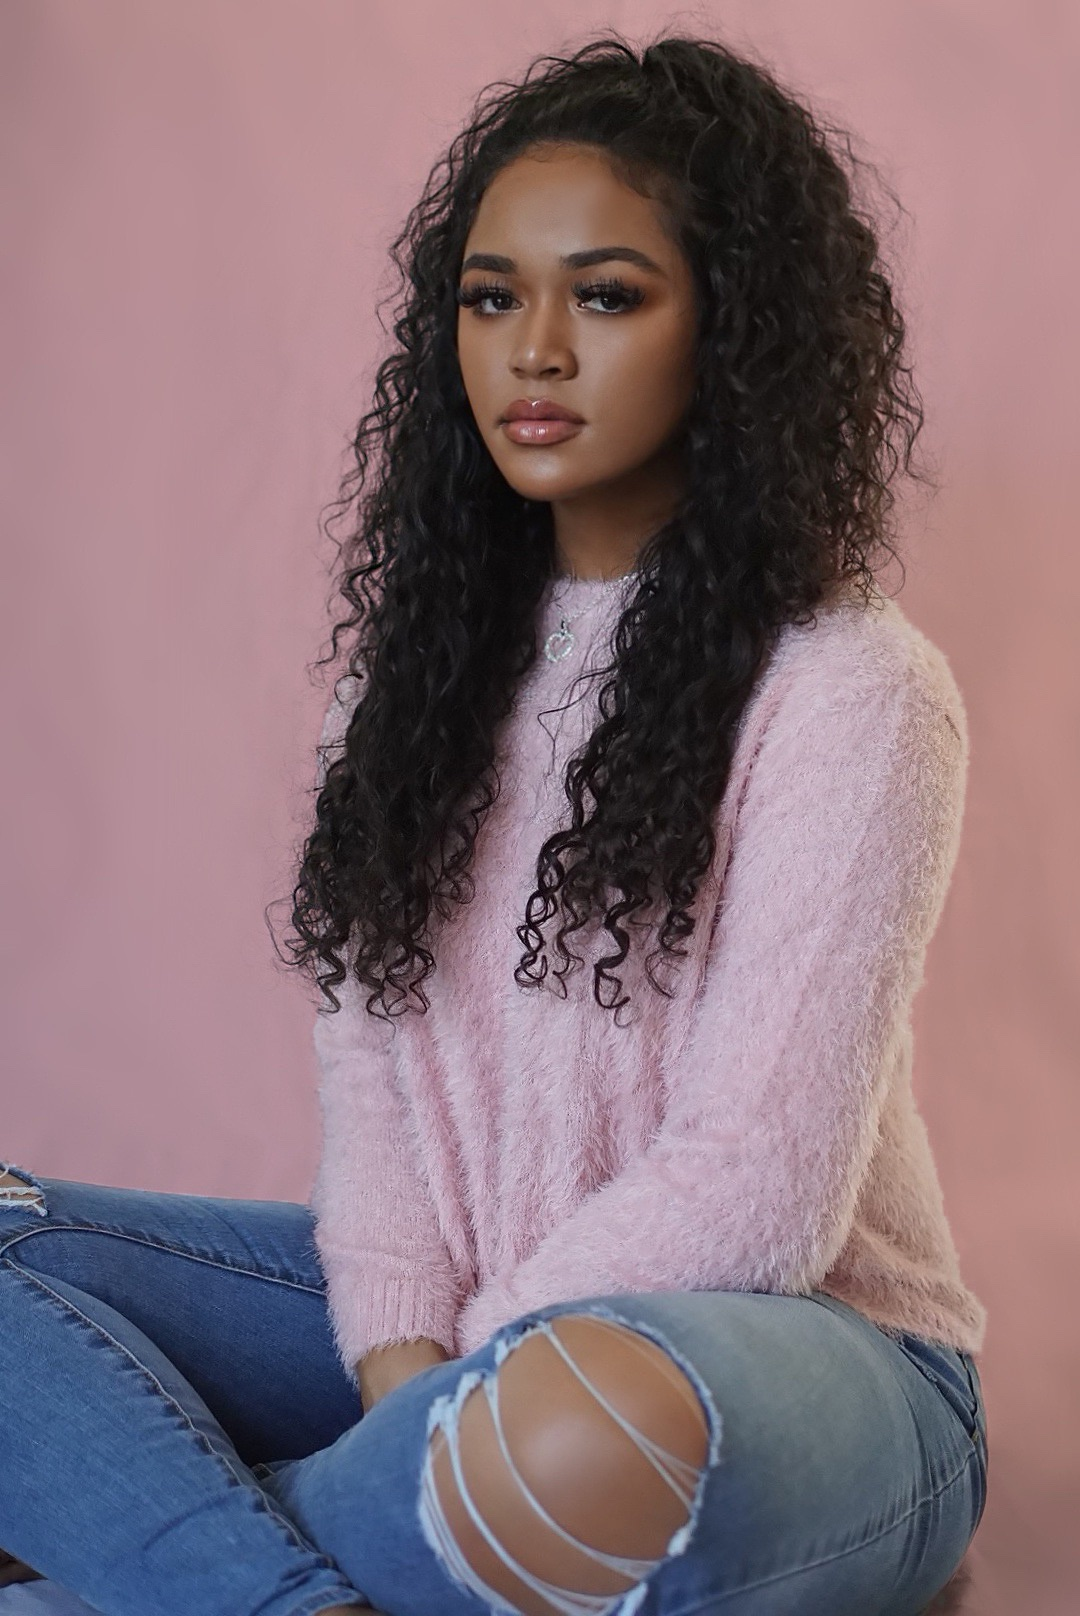 Lex Hit Major New Milestones as Up and Coming R&B Artist